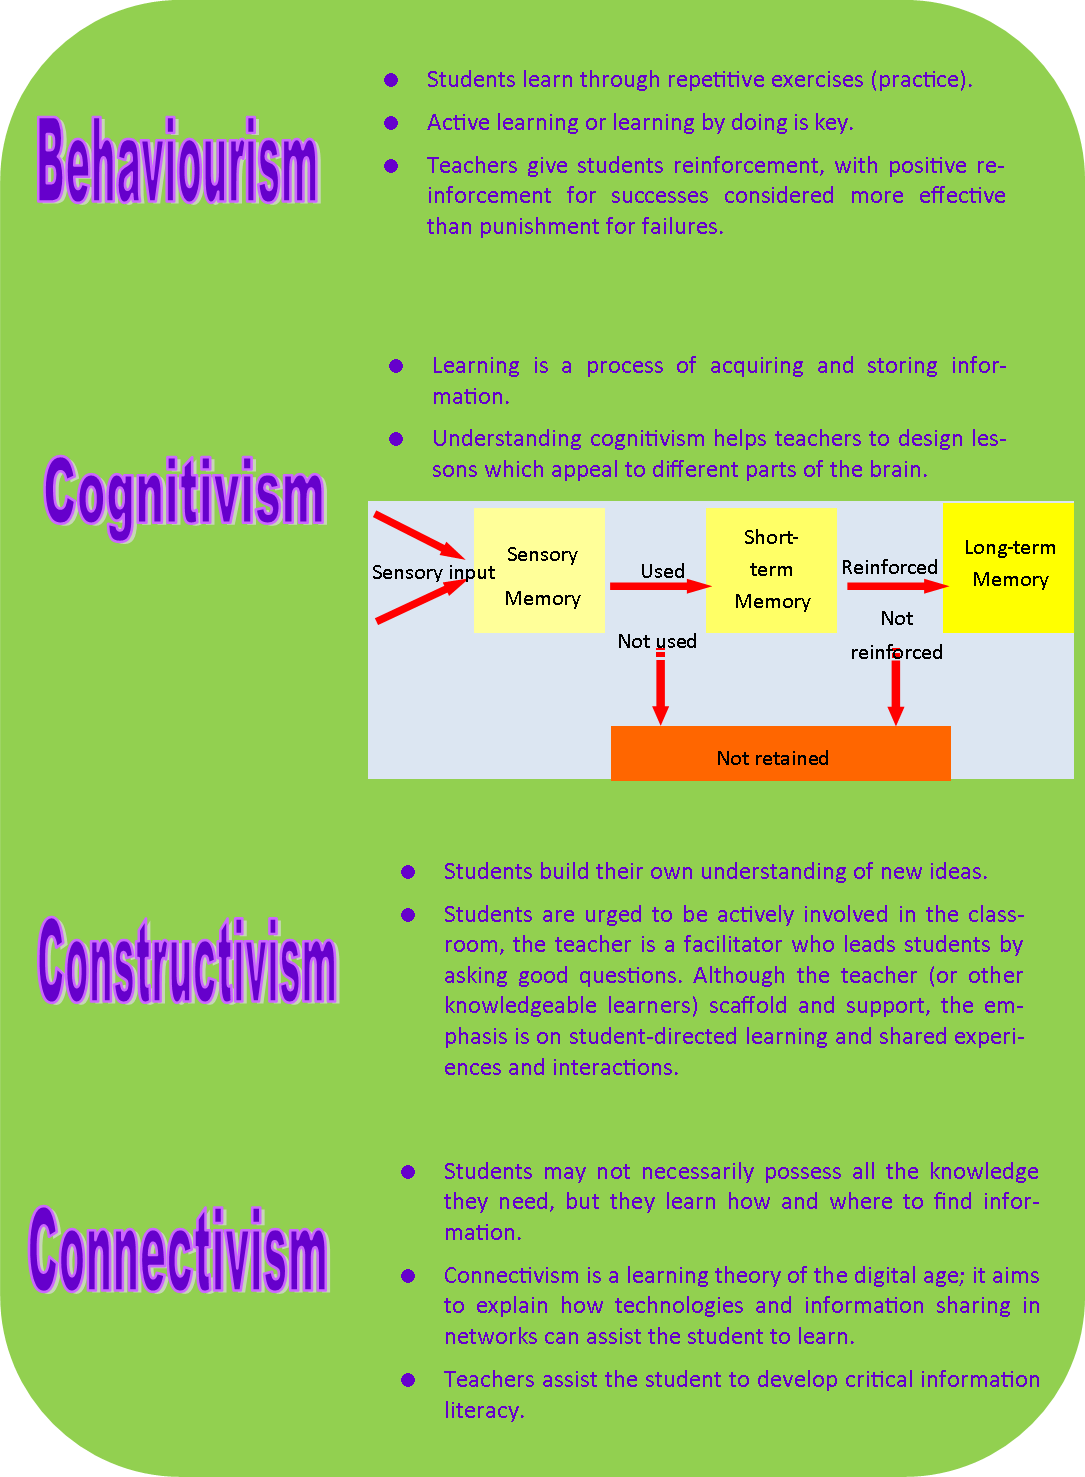 Compare and contrast vygotsky and bronfenbrenner